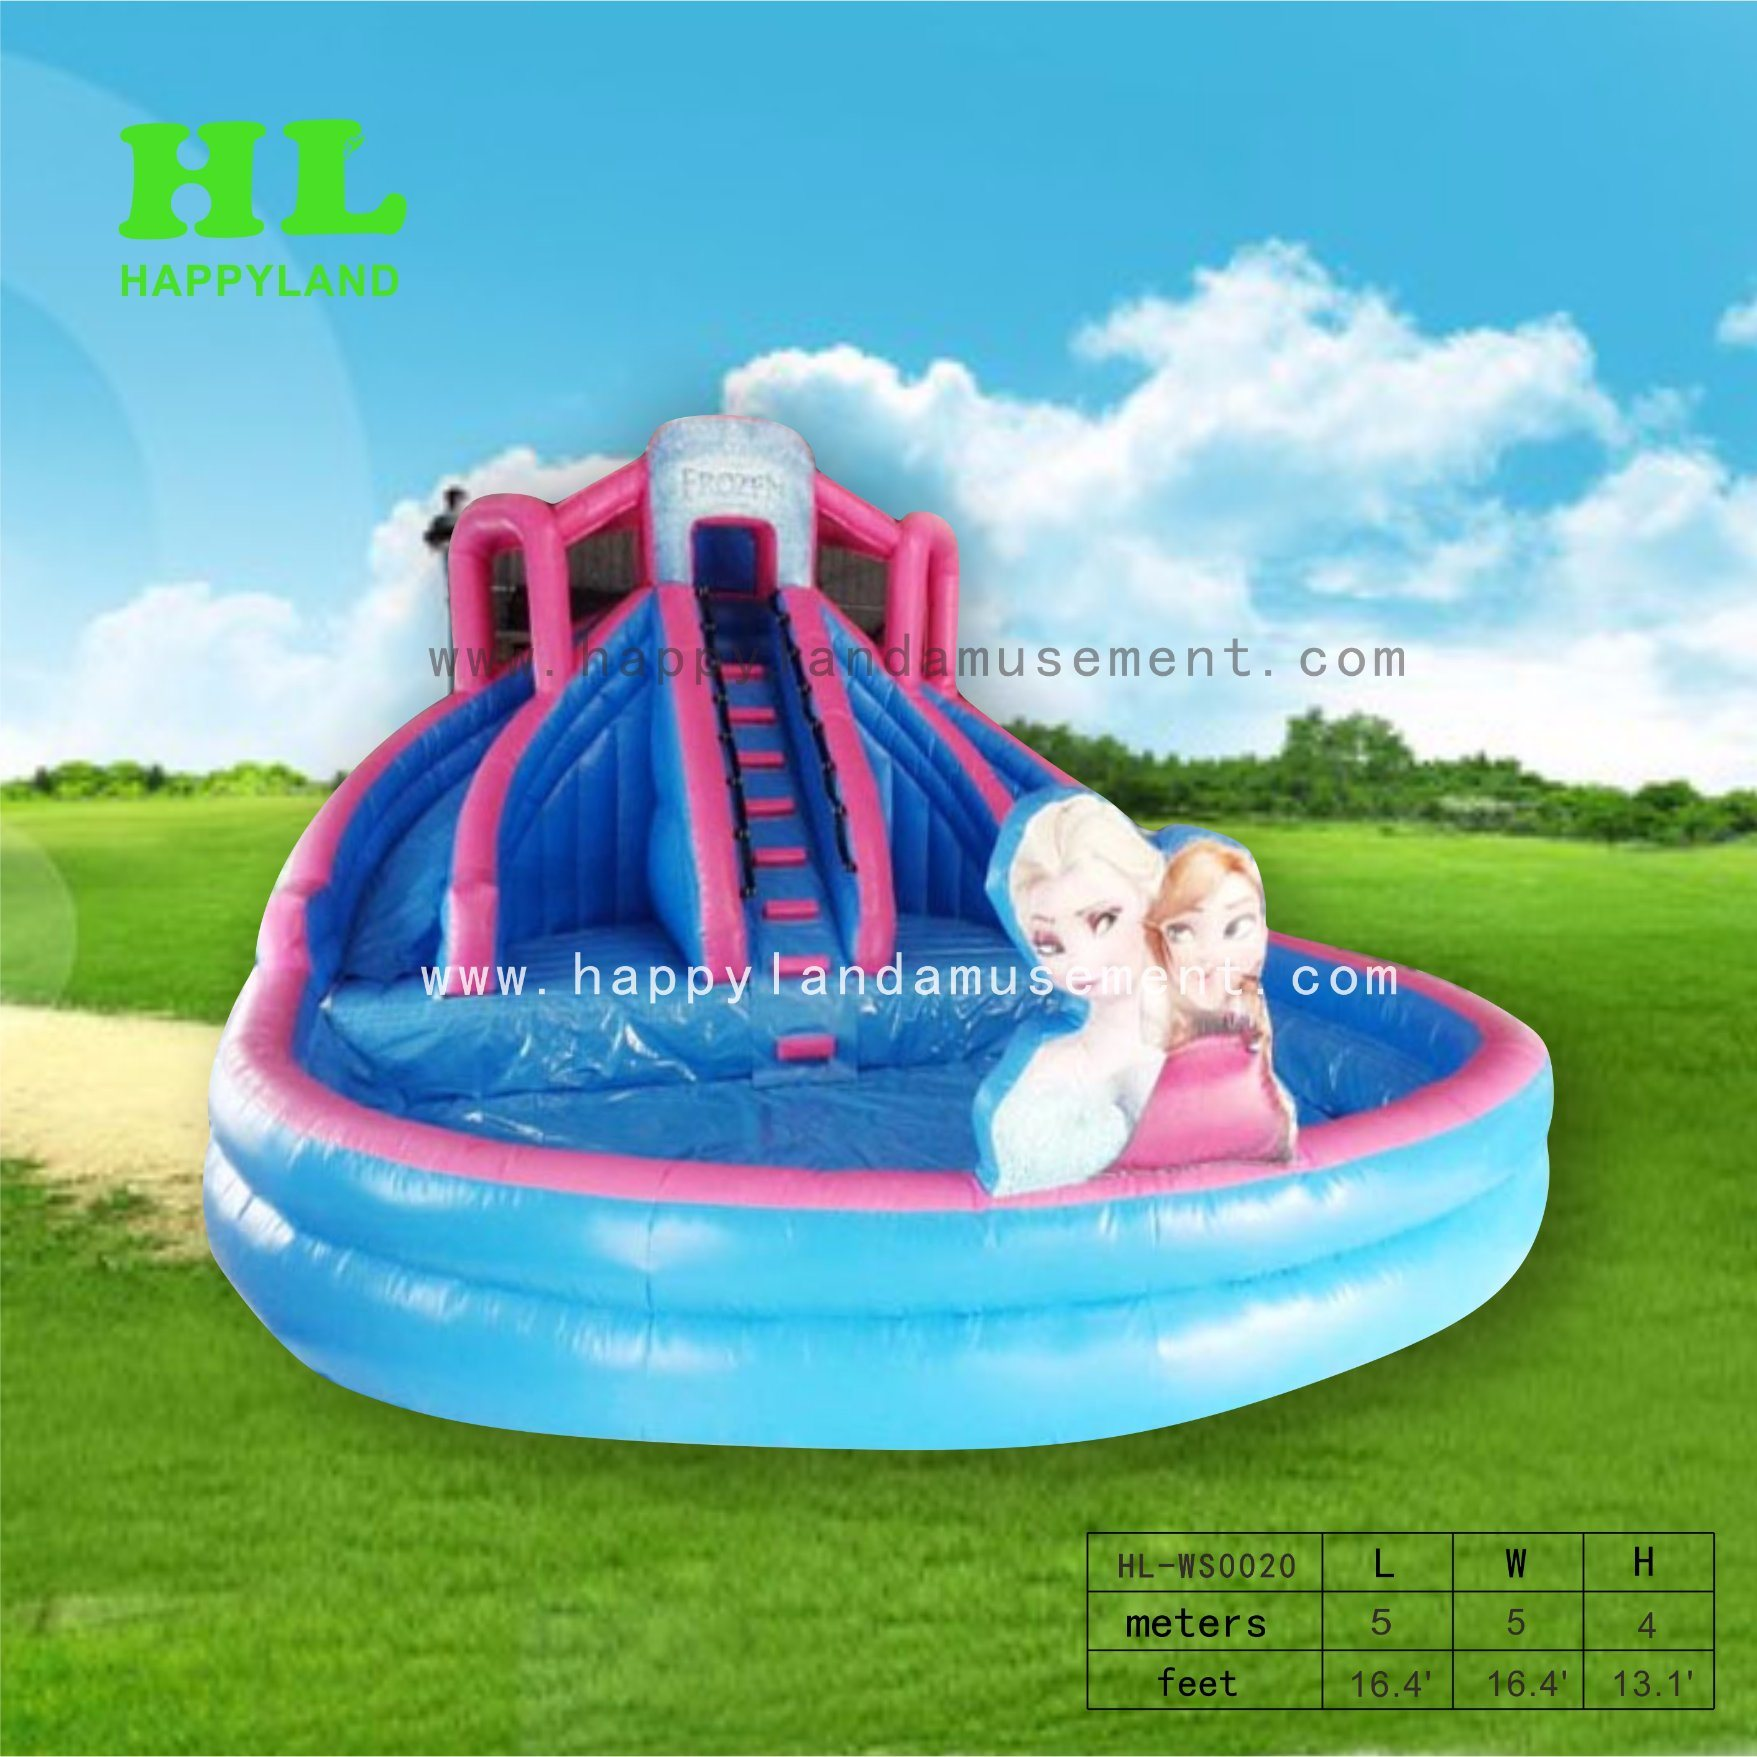 China Dreamlike Inflatable Water Slide With Giant Swimming Pool For Kids Playing Outdoor Exercises Game China Inflatable And Slide Price